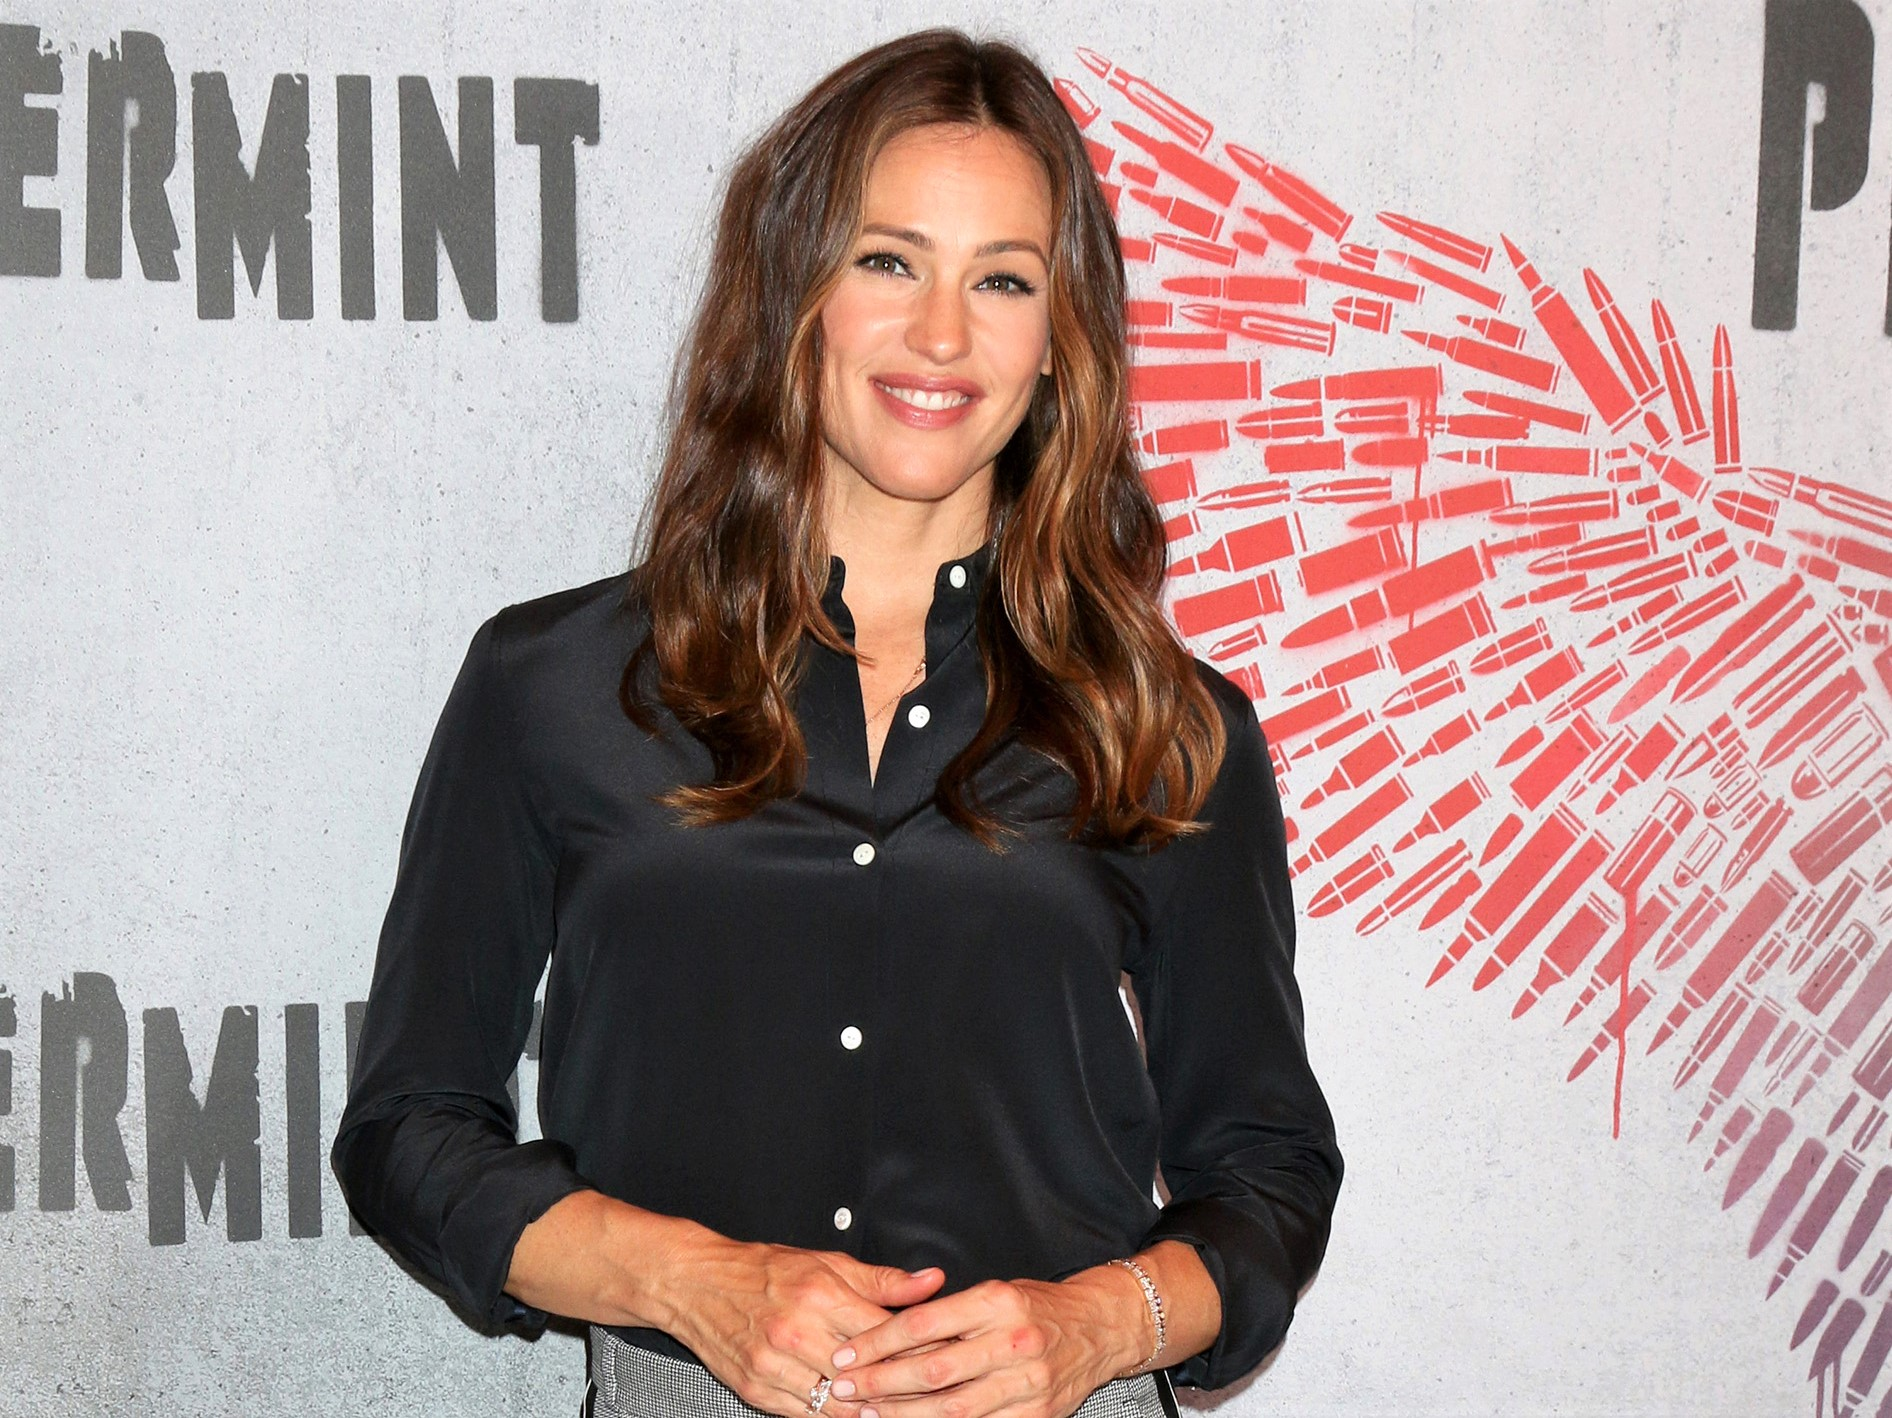 Jennifer Garner Turns Herself Into a First Day of School Meme that Any Parent Can Relate to